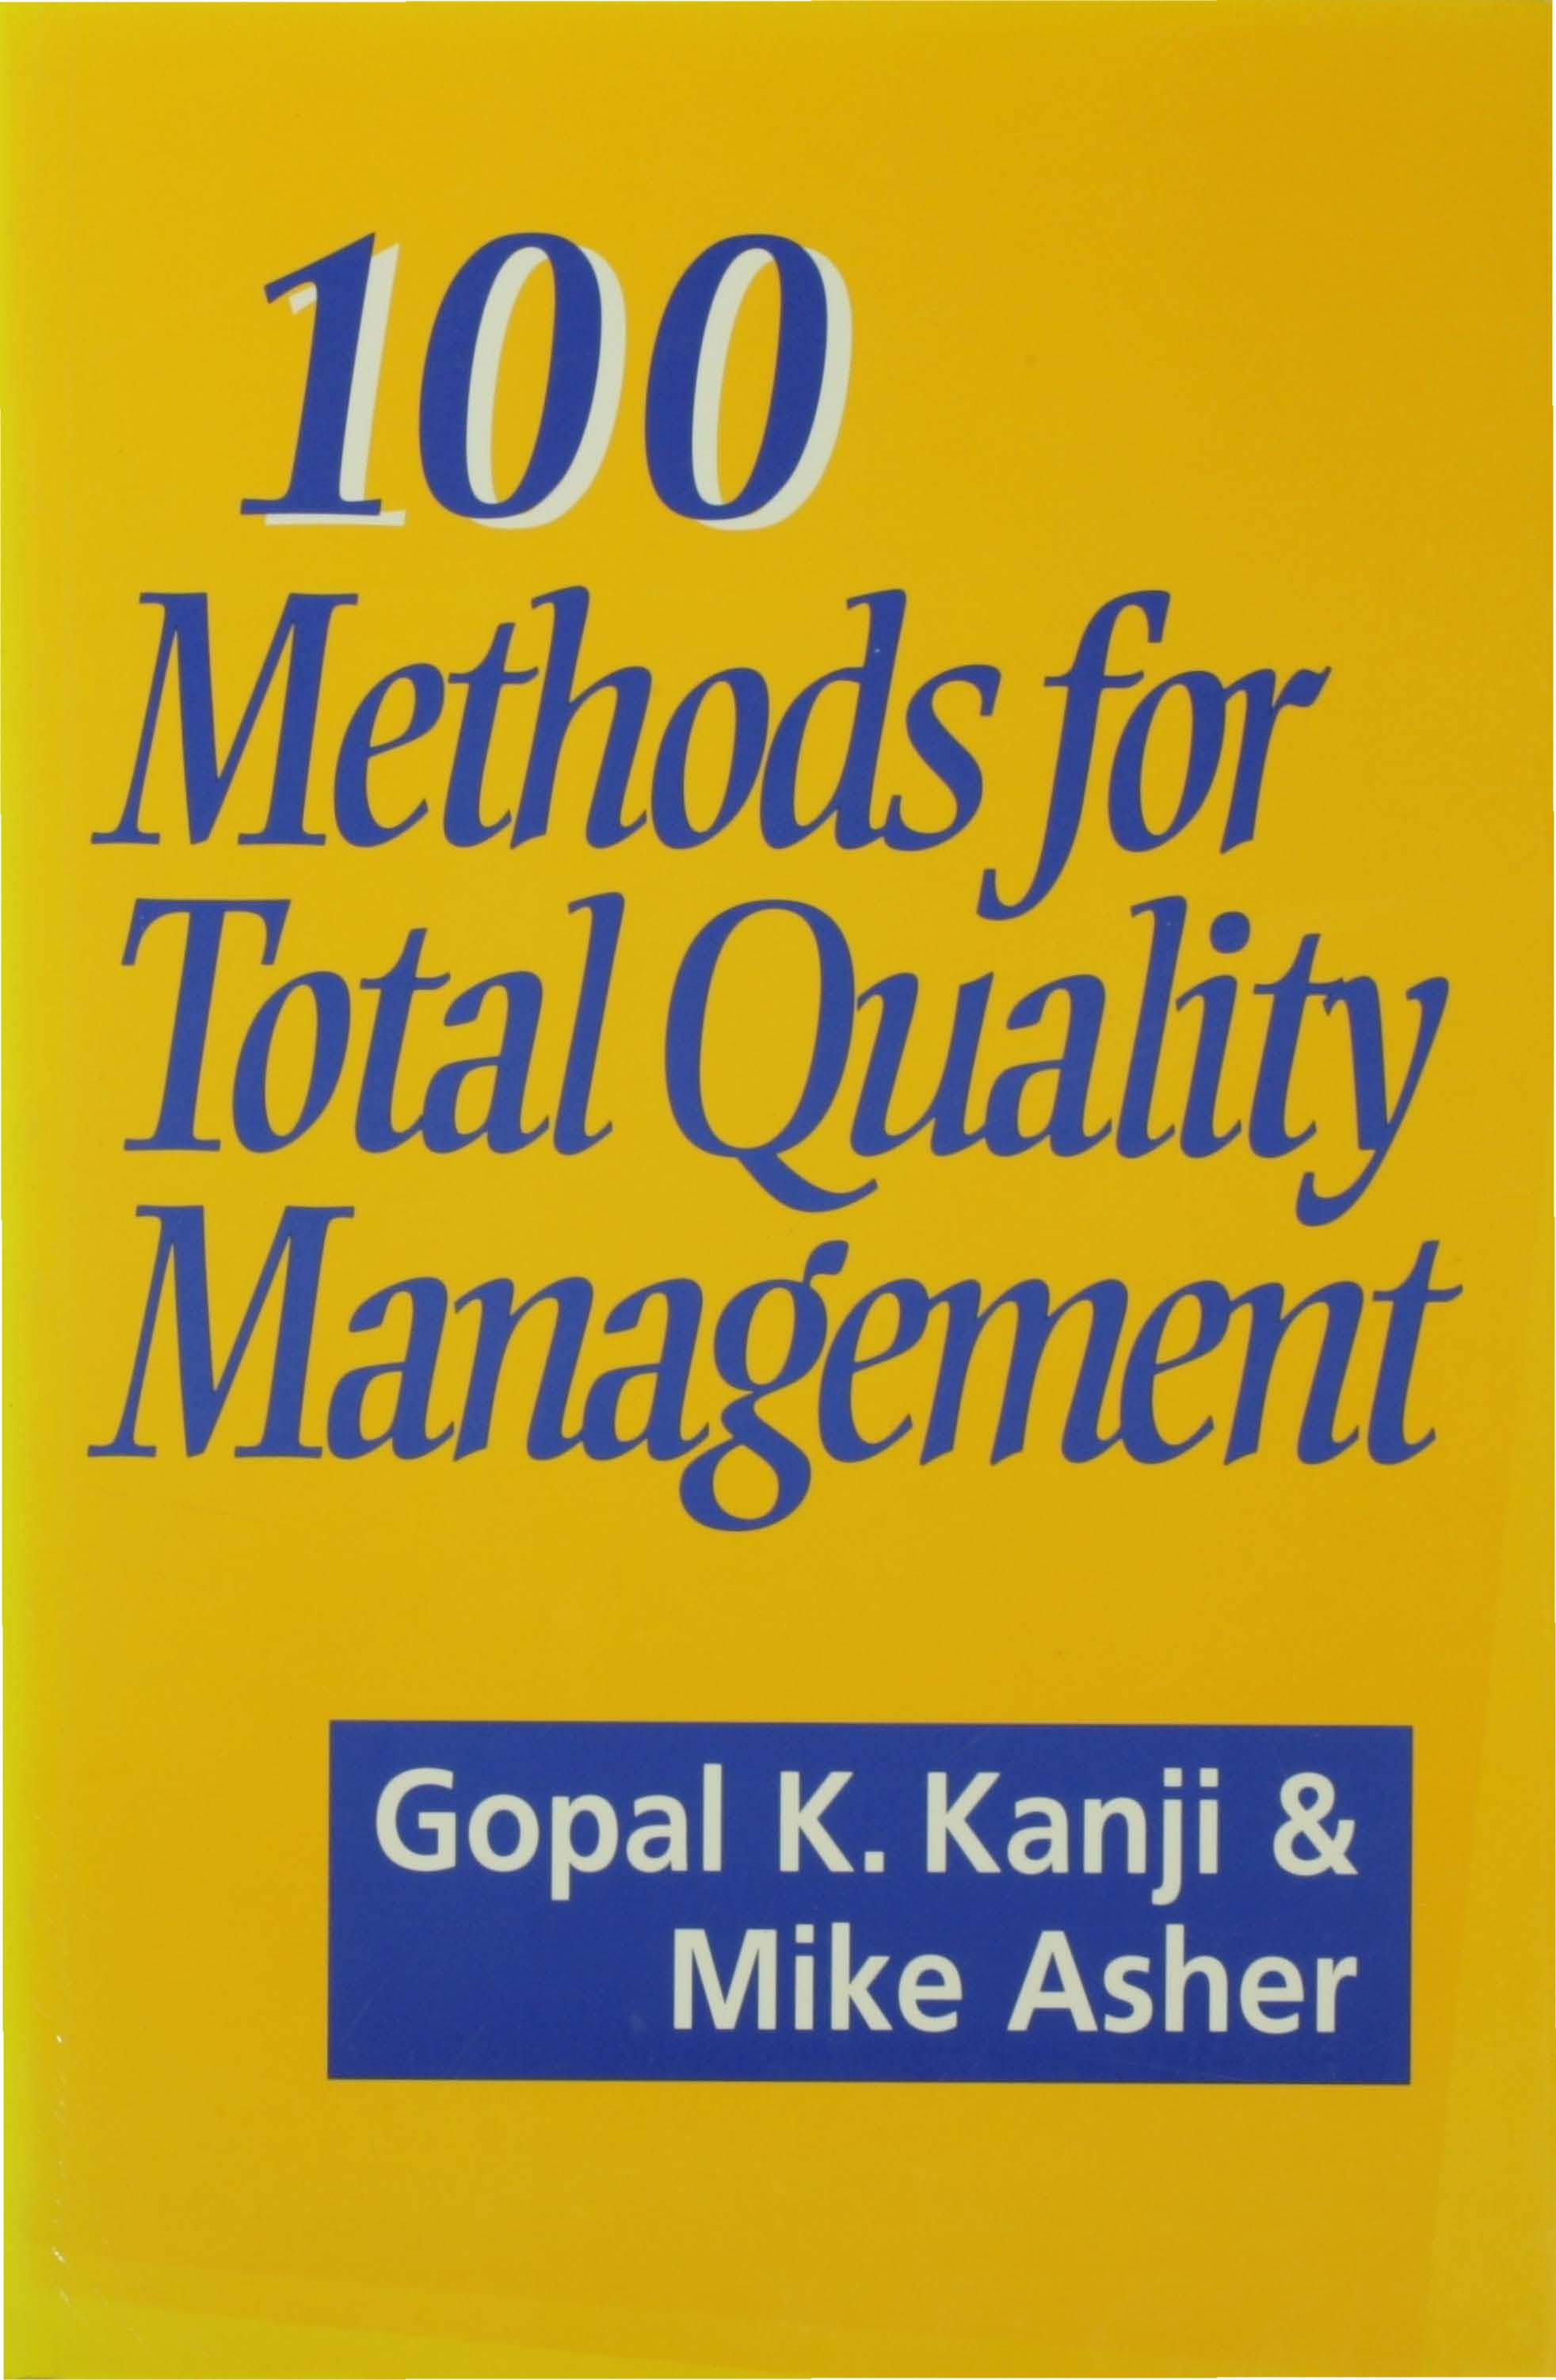 Download Ebook 100 Methods for Total Quality Management by Gopal K Kanji Pdf